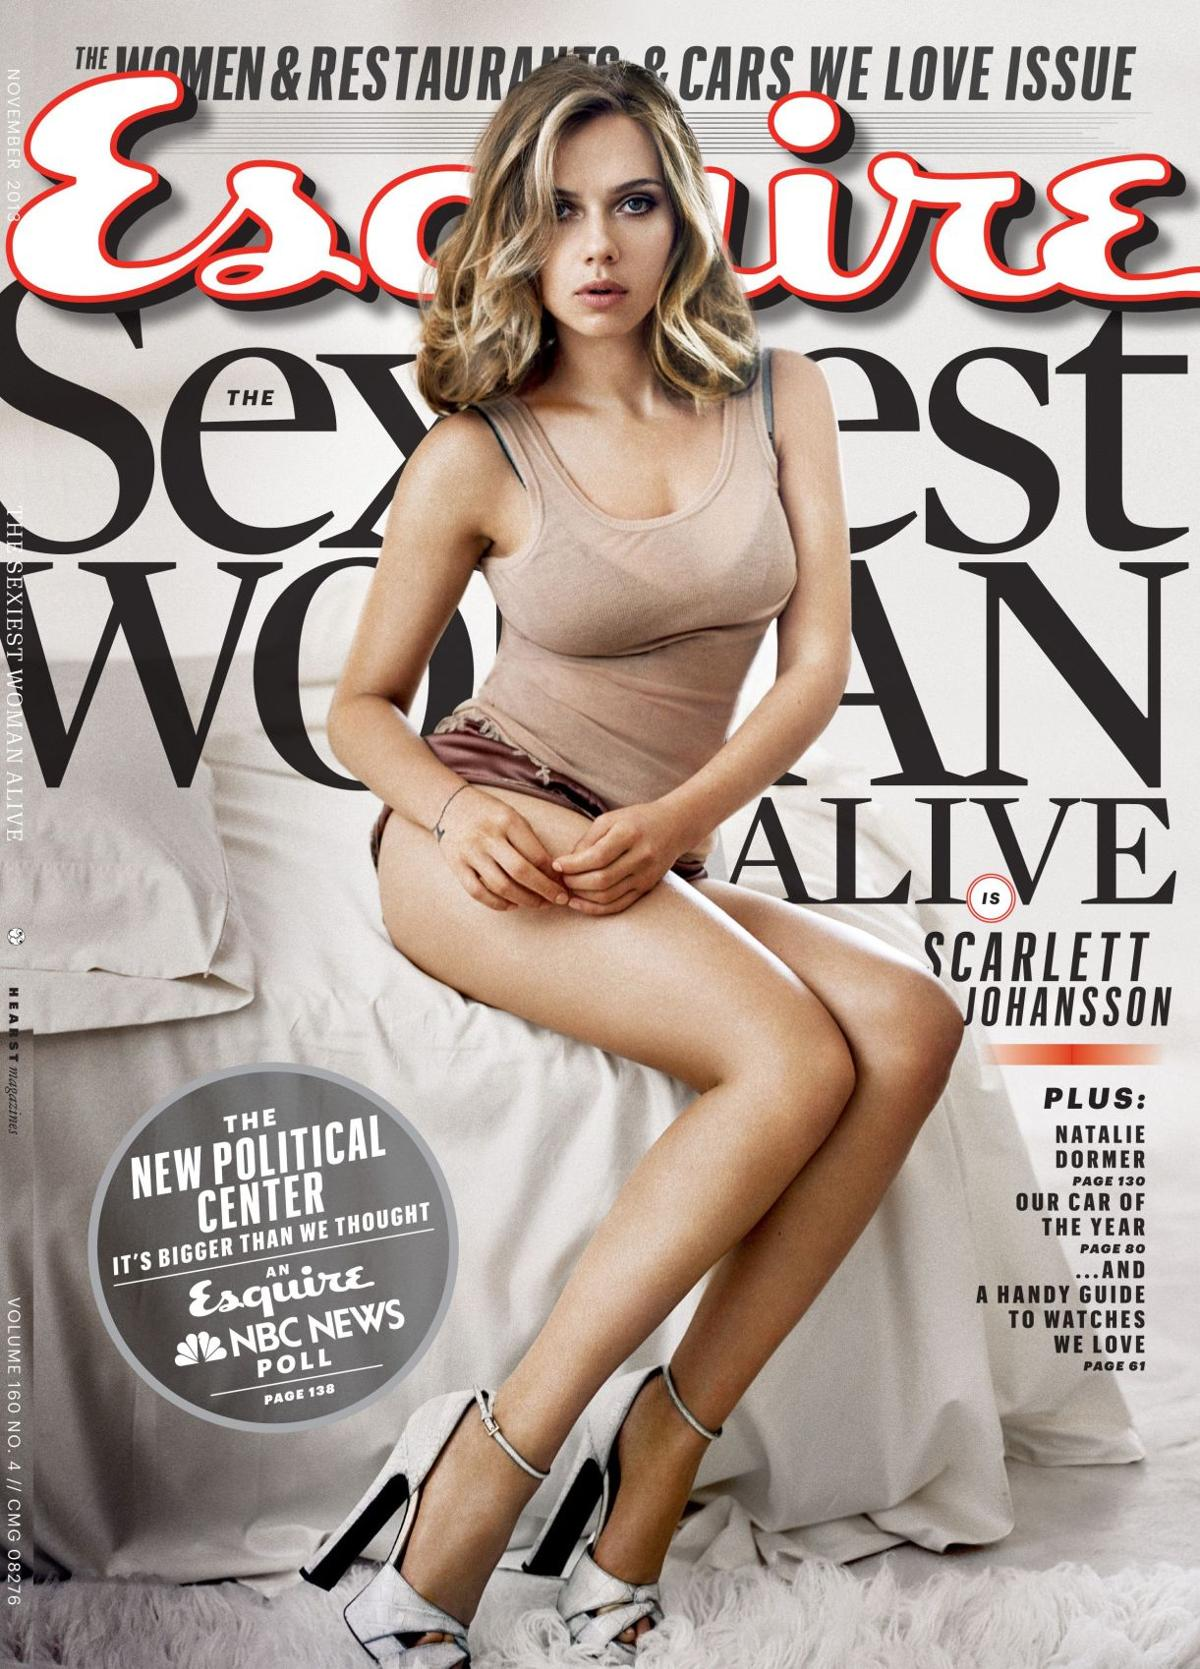 Scarlett Johansson the first to twice be named the 'sexiest woman alive' by Esquire